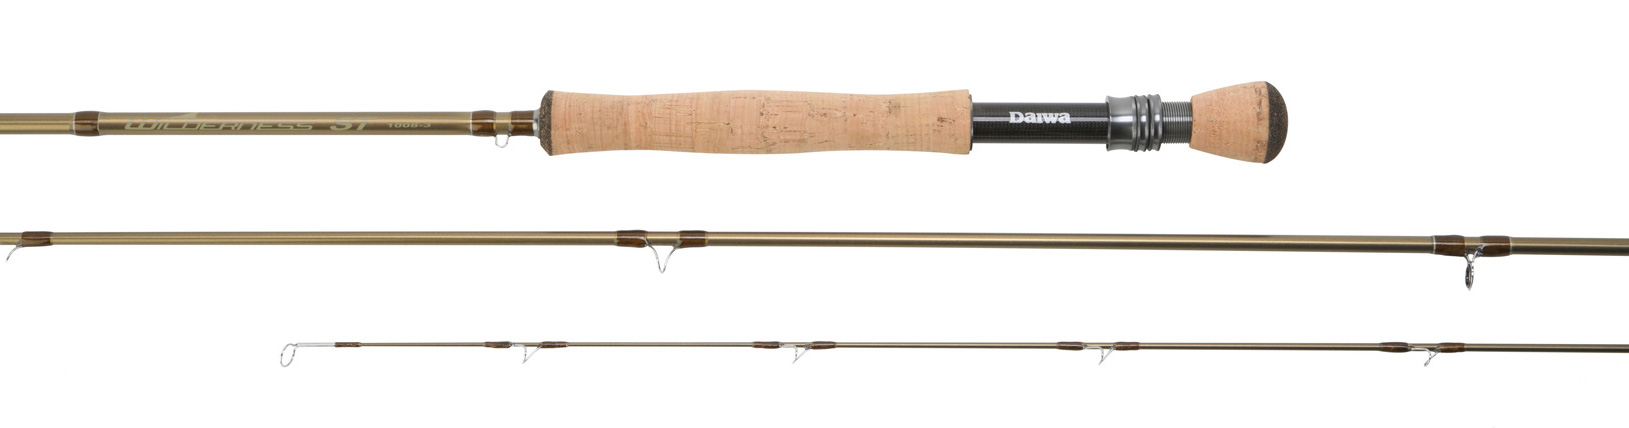 Daiwa wilderness st fly fishing rod half price clearance for Fishing rod price